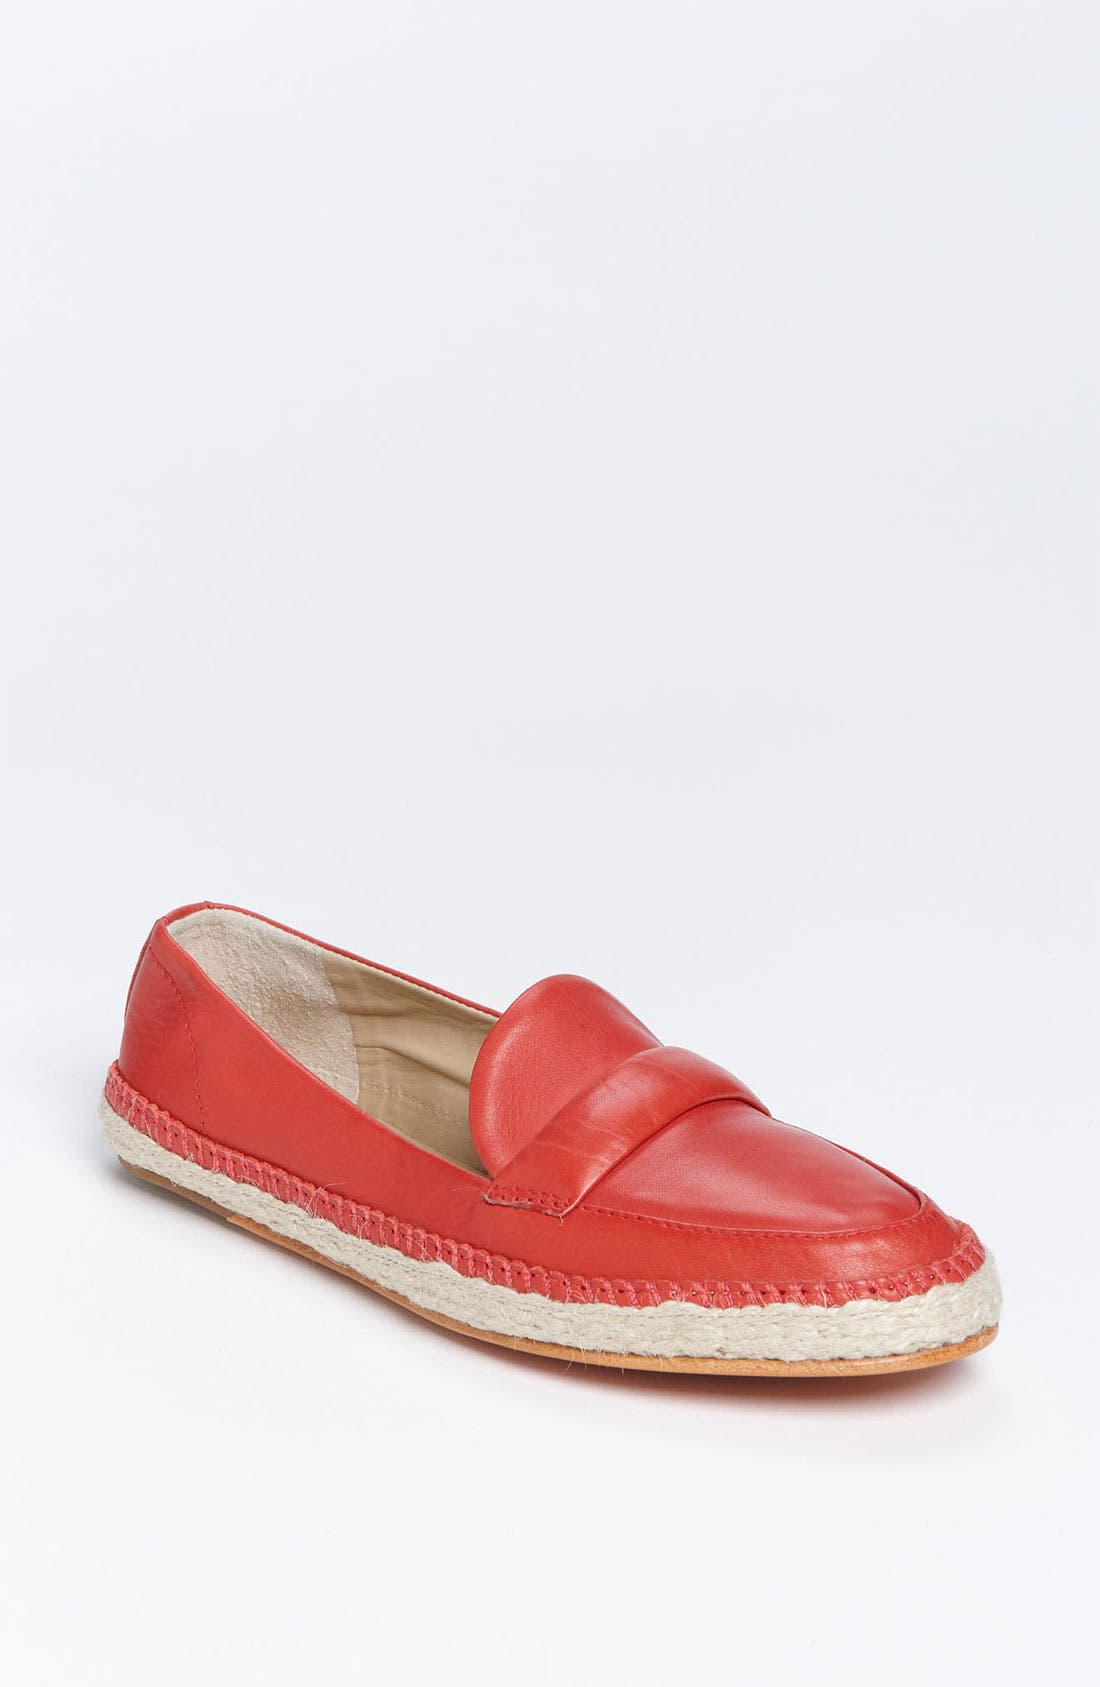 Alternate Image 1 Selected - rag & bone 'Sophia' Loafer